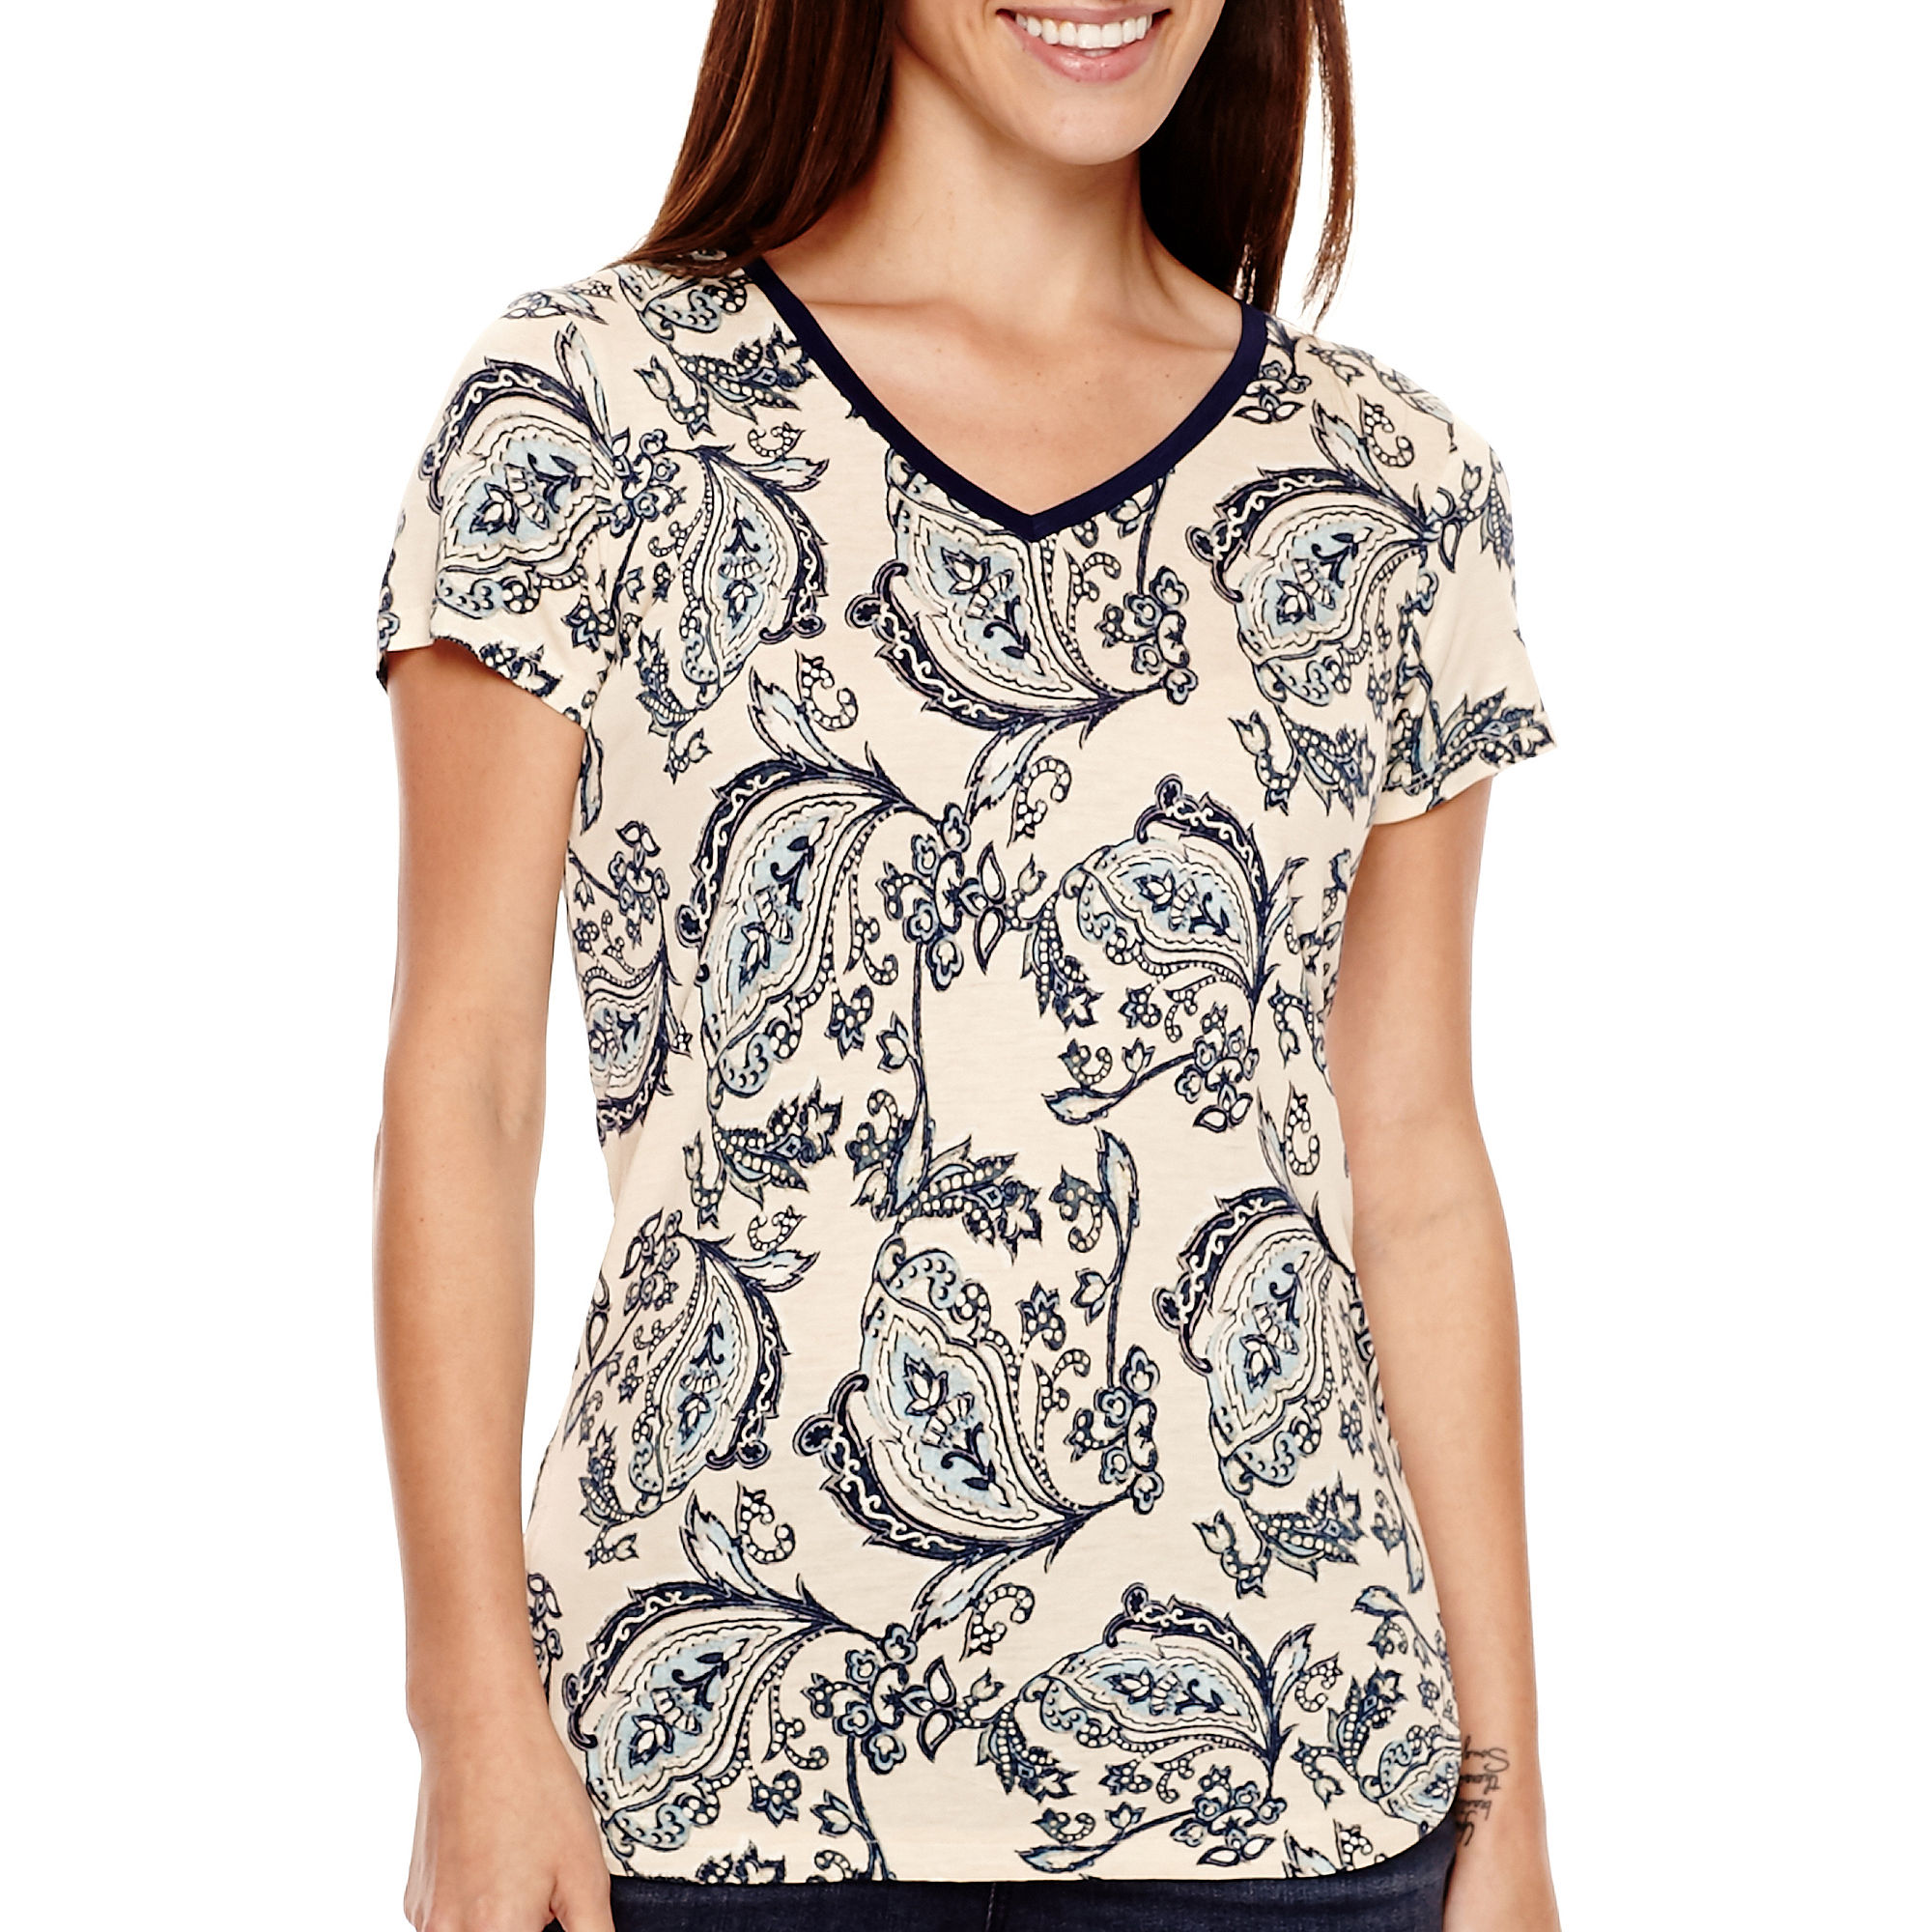 Liz claiborne clothing online shopping